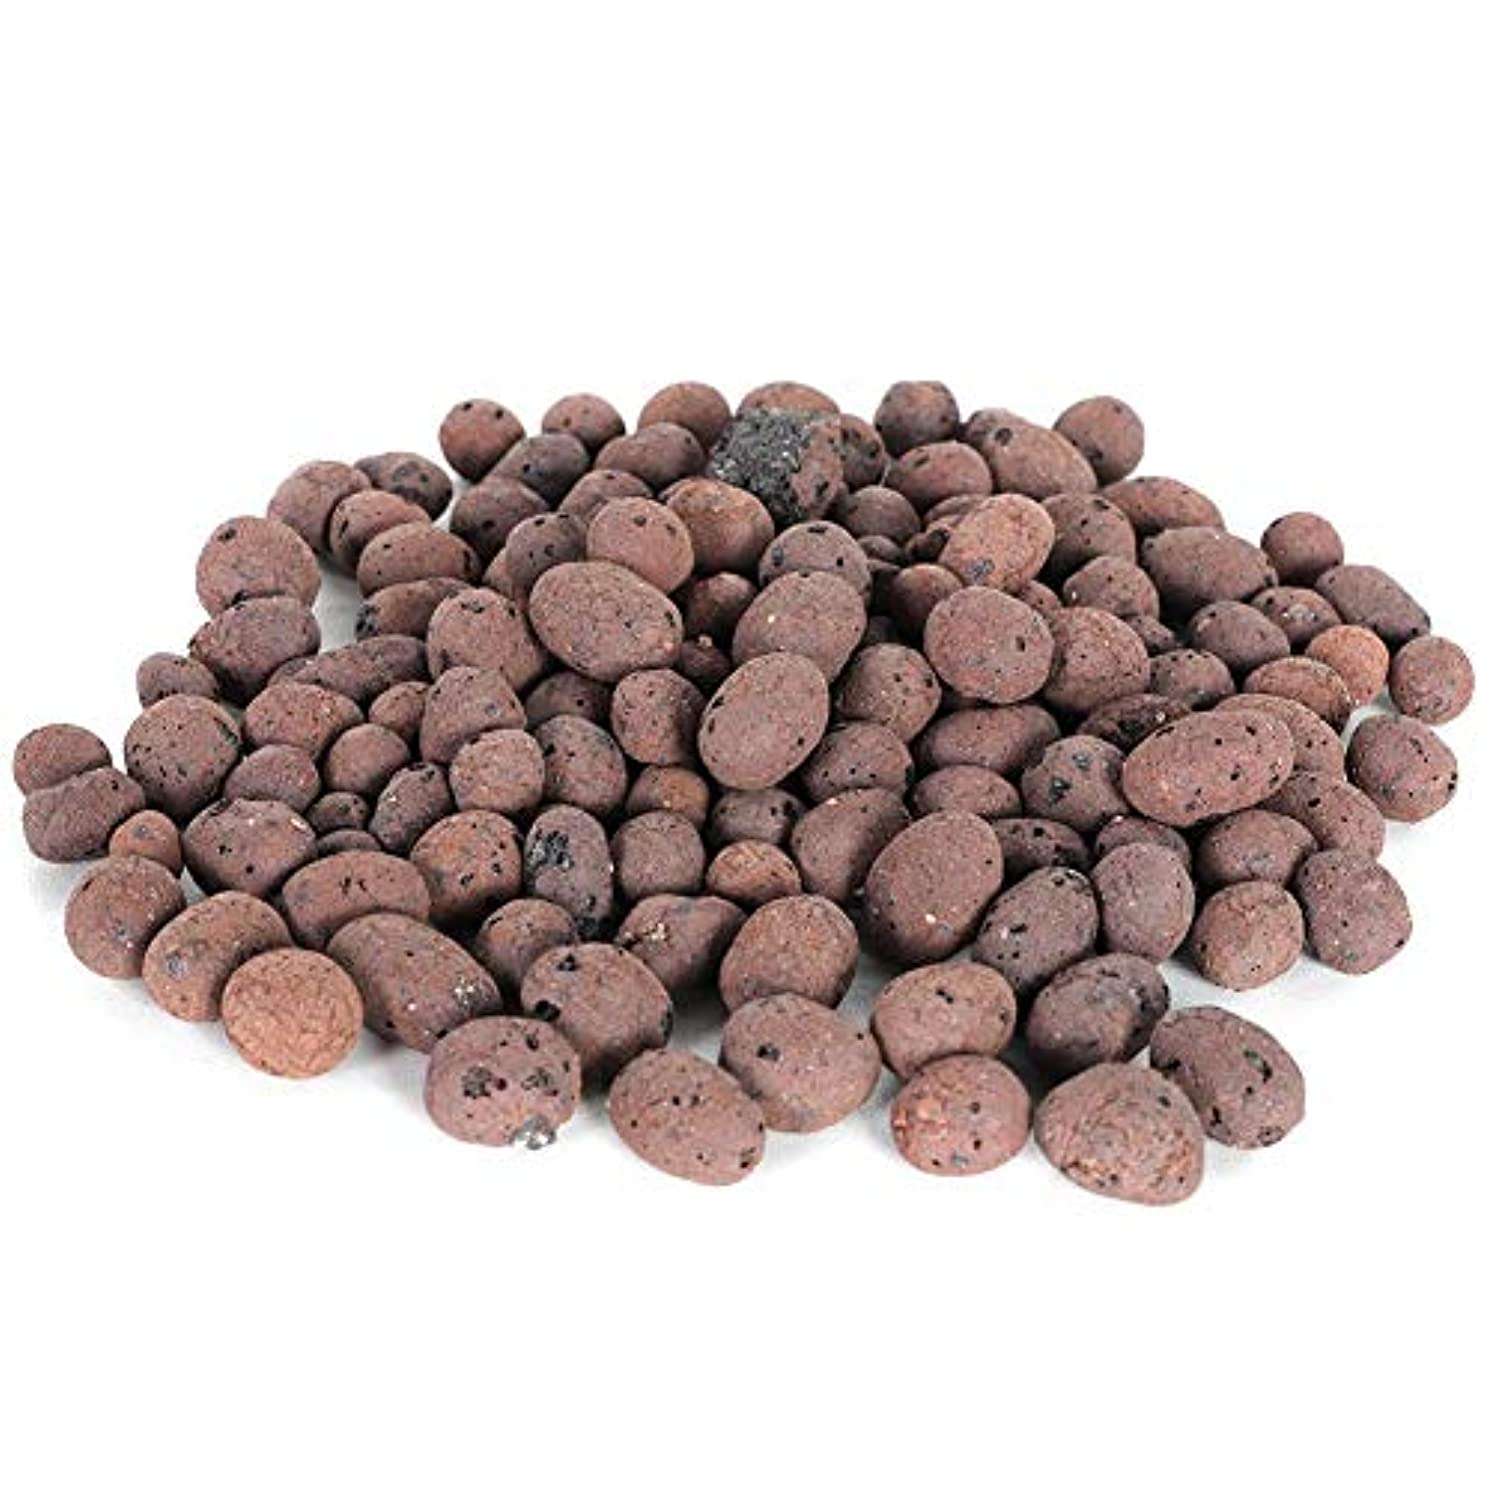 Eastbuy Clay Pebble - Hydroponic Clay Pebbles Growing Media Anion Clay Rocks for Hydroponic System